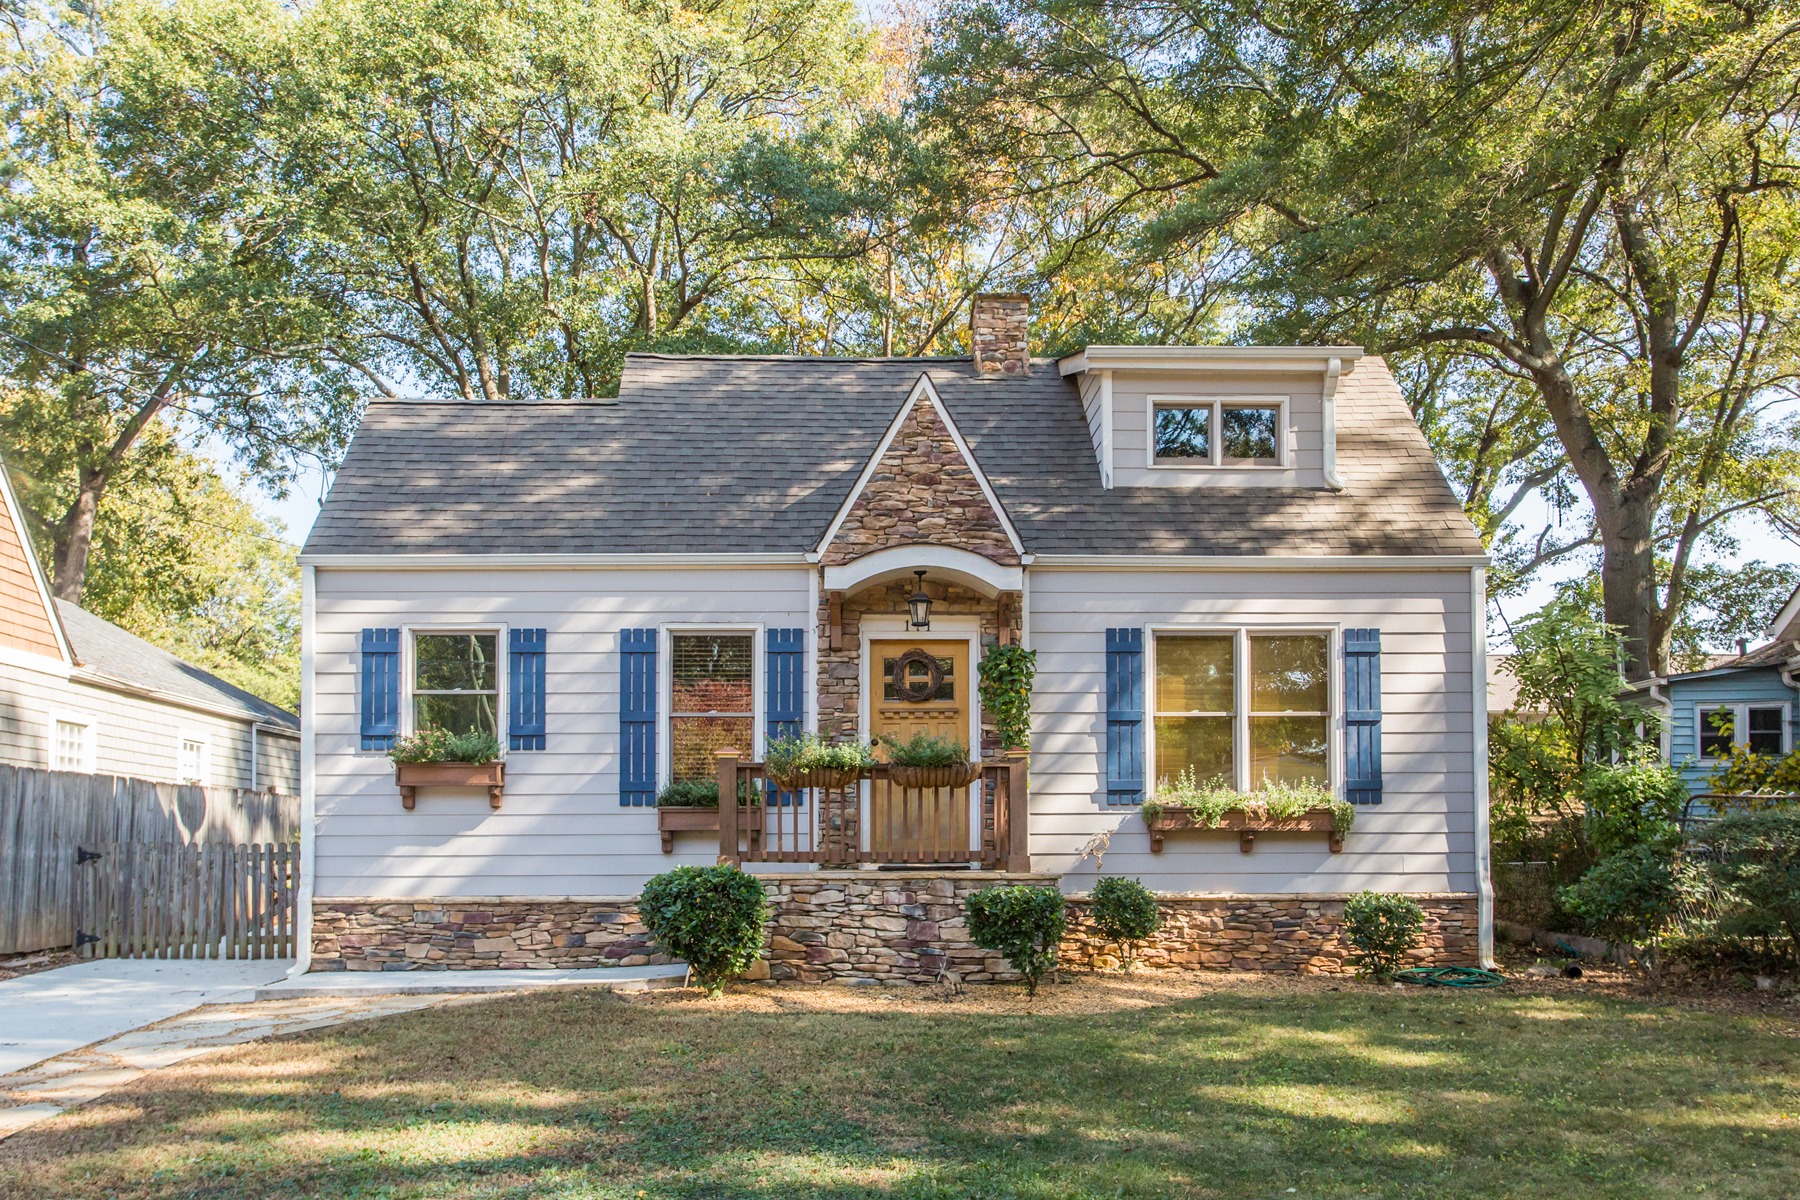 Single Family Home for Sale at Captivating Edgewood Cape Cod 171 Whitefoord Avenue NE Atlanta, Georgia, 30307 United States